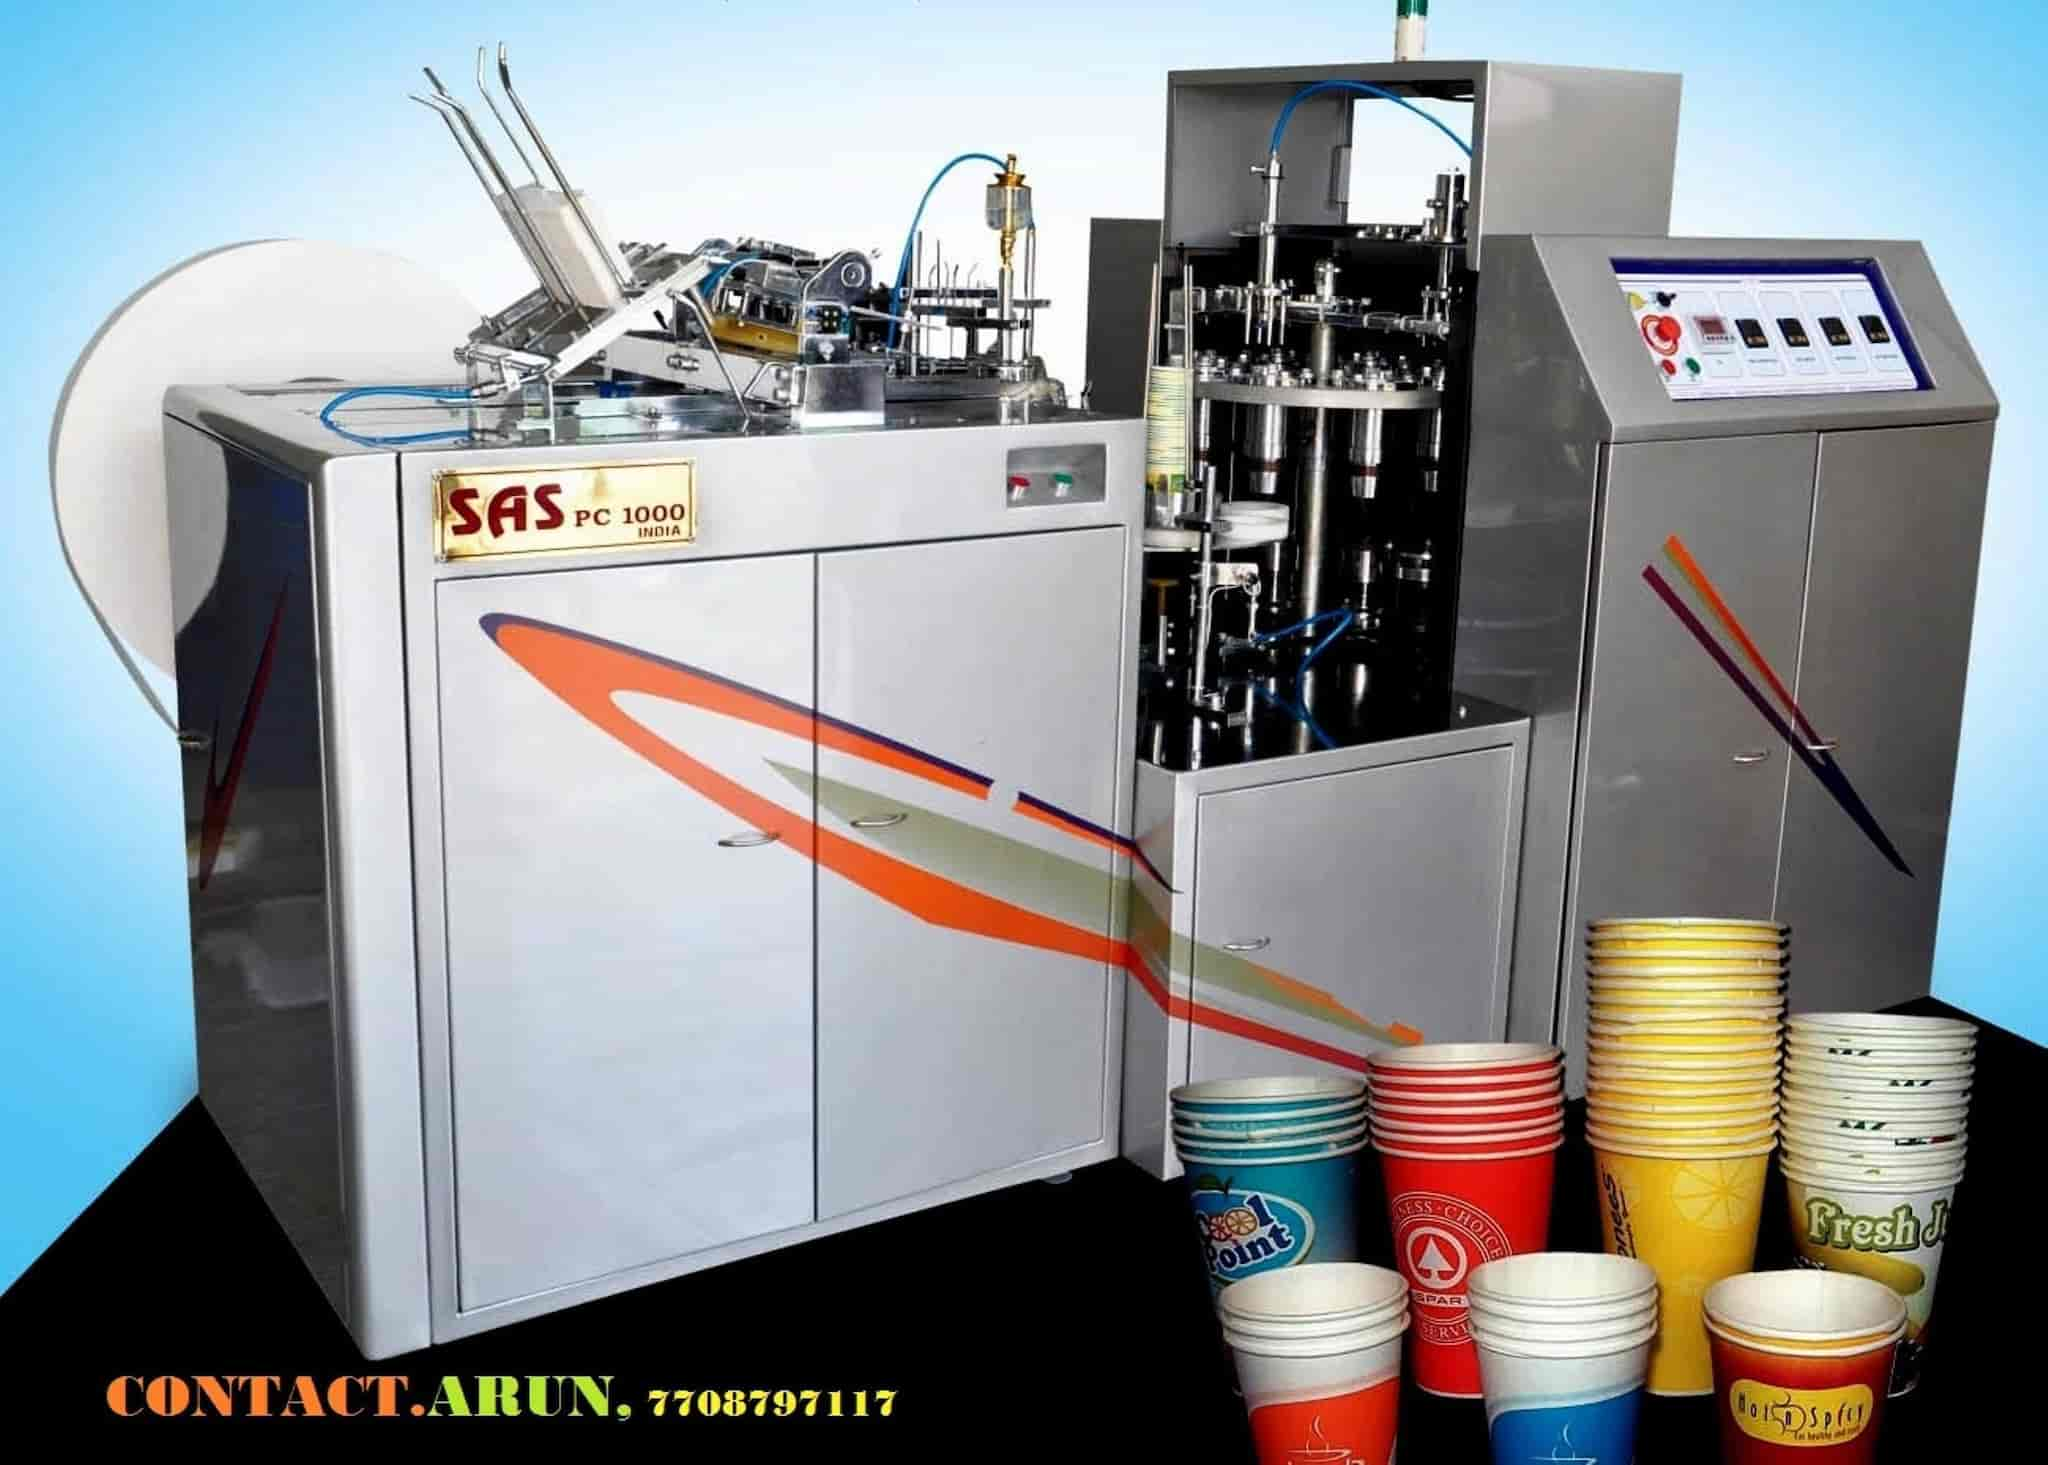 Sas Industry ( Indian Made Heavy Duty Machine ) - Paper Plate Making Machine Dealers in Chandigarh - Justdial & Sas Industry ( Indian Made Heavy Duty Machine ) - Paper Plate Making ...